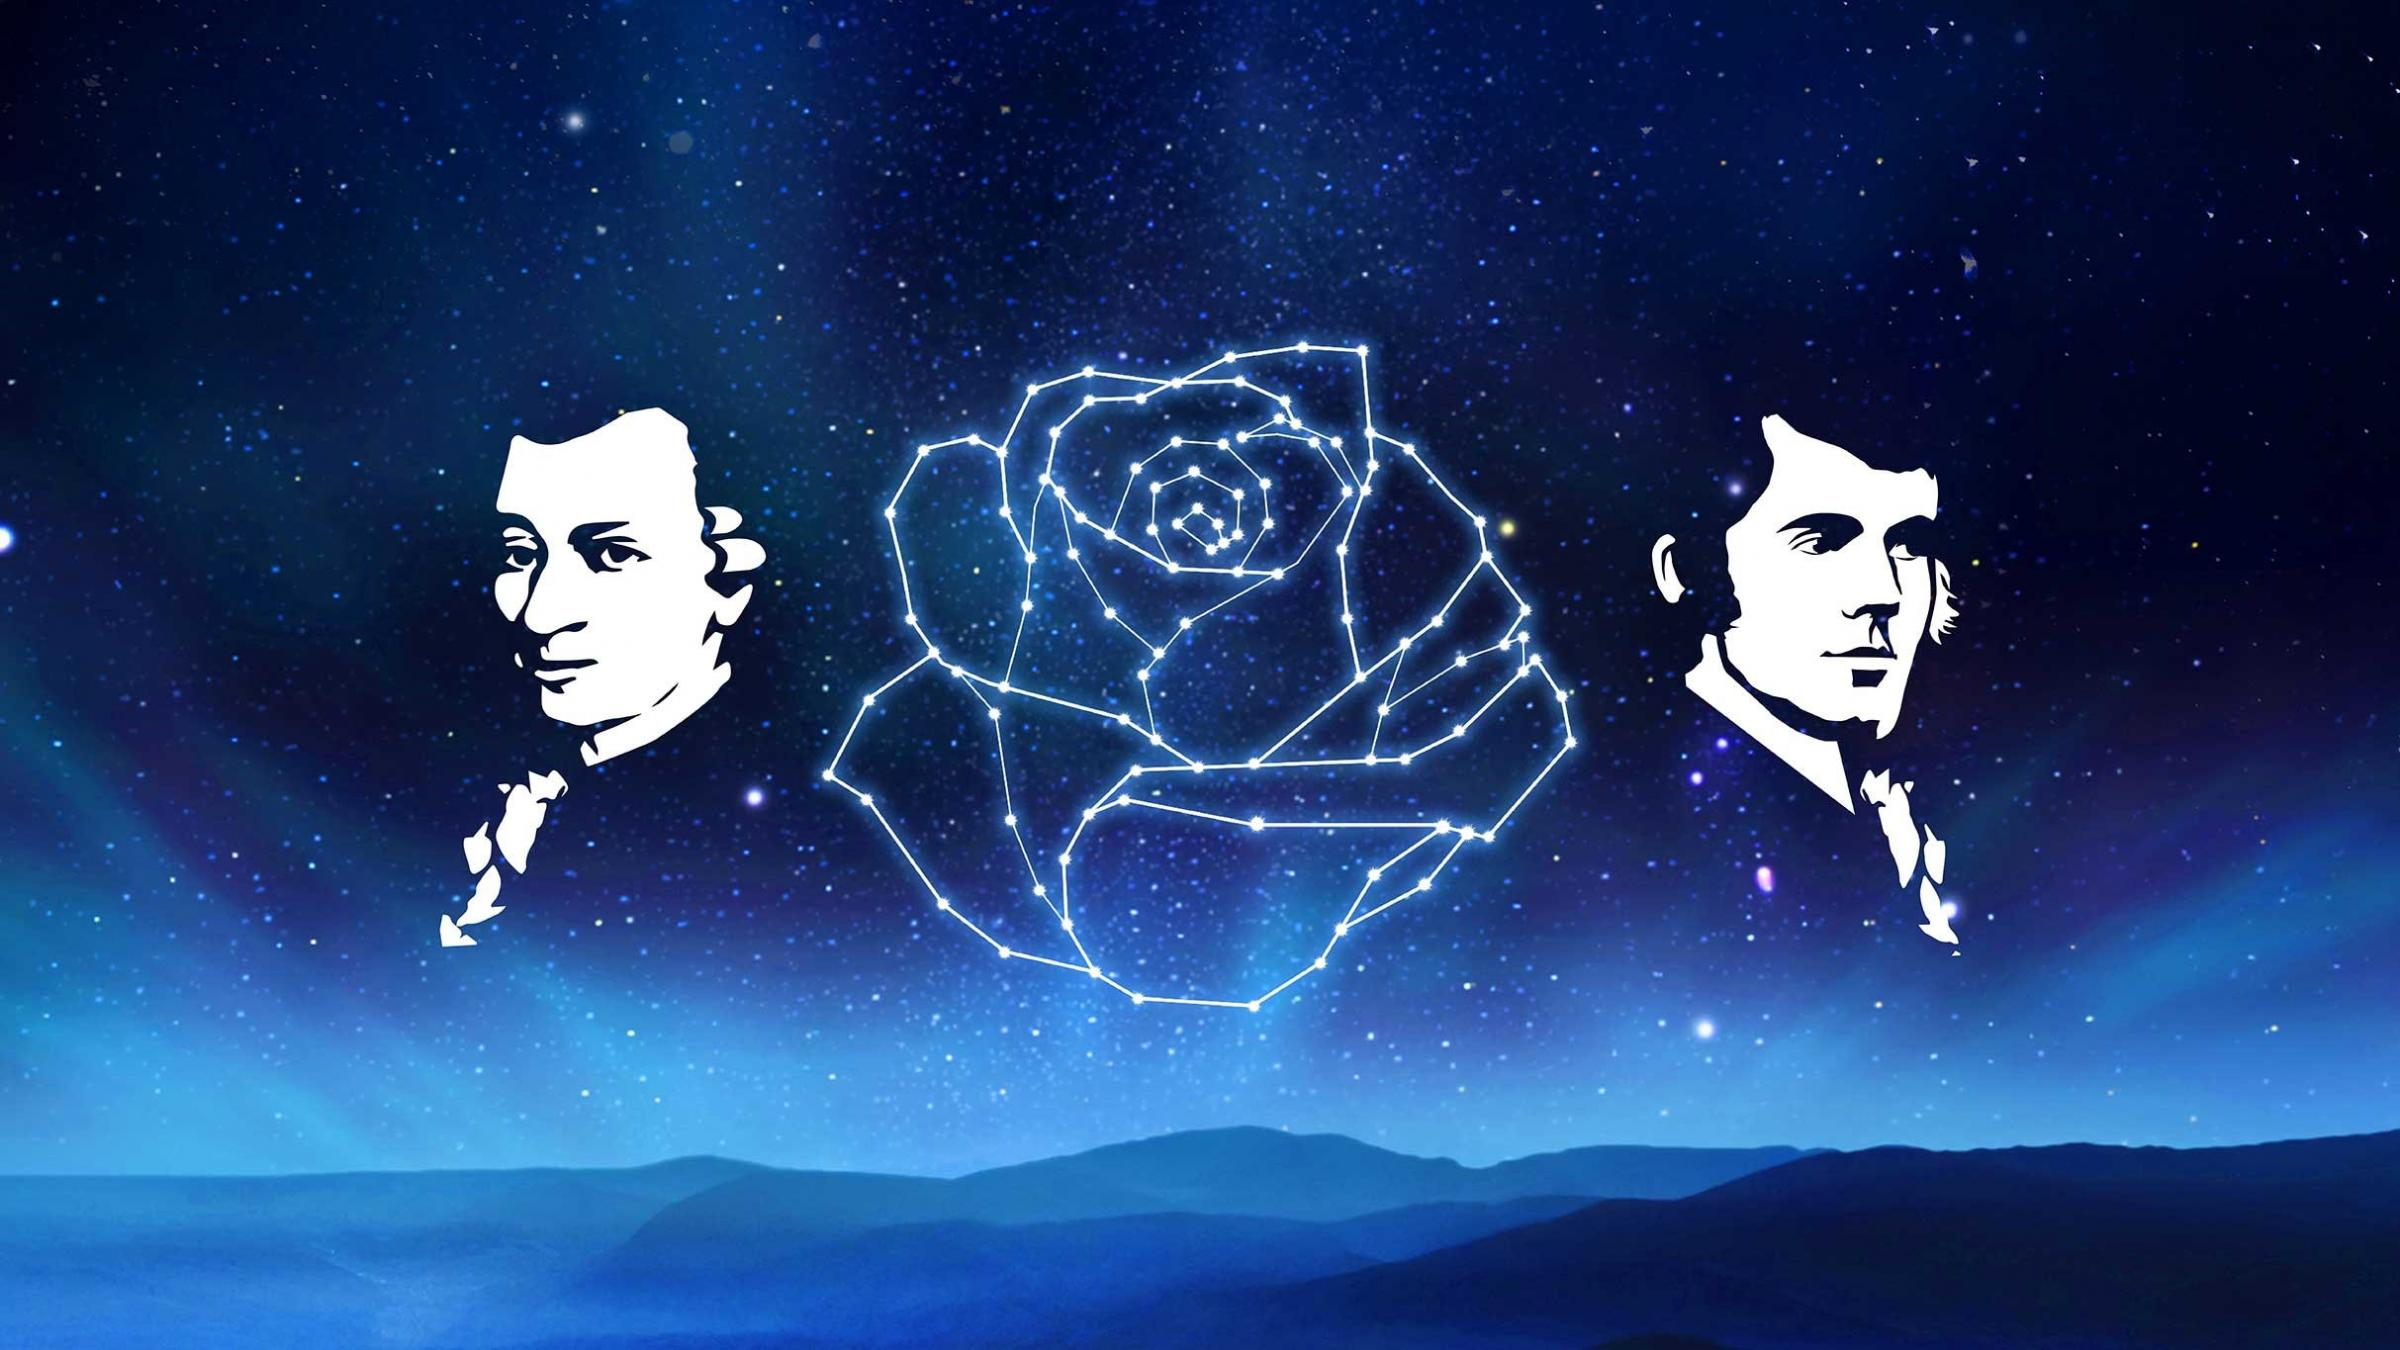 Amadeus & The Bard: 18th Century Cosmic Brothers